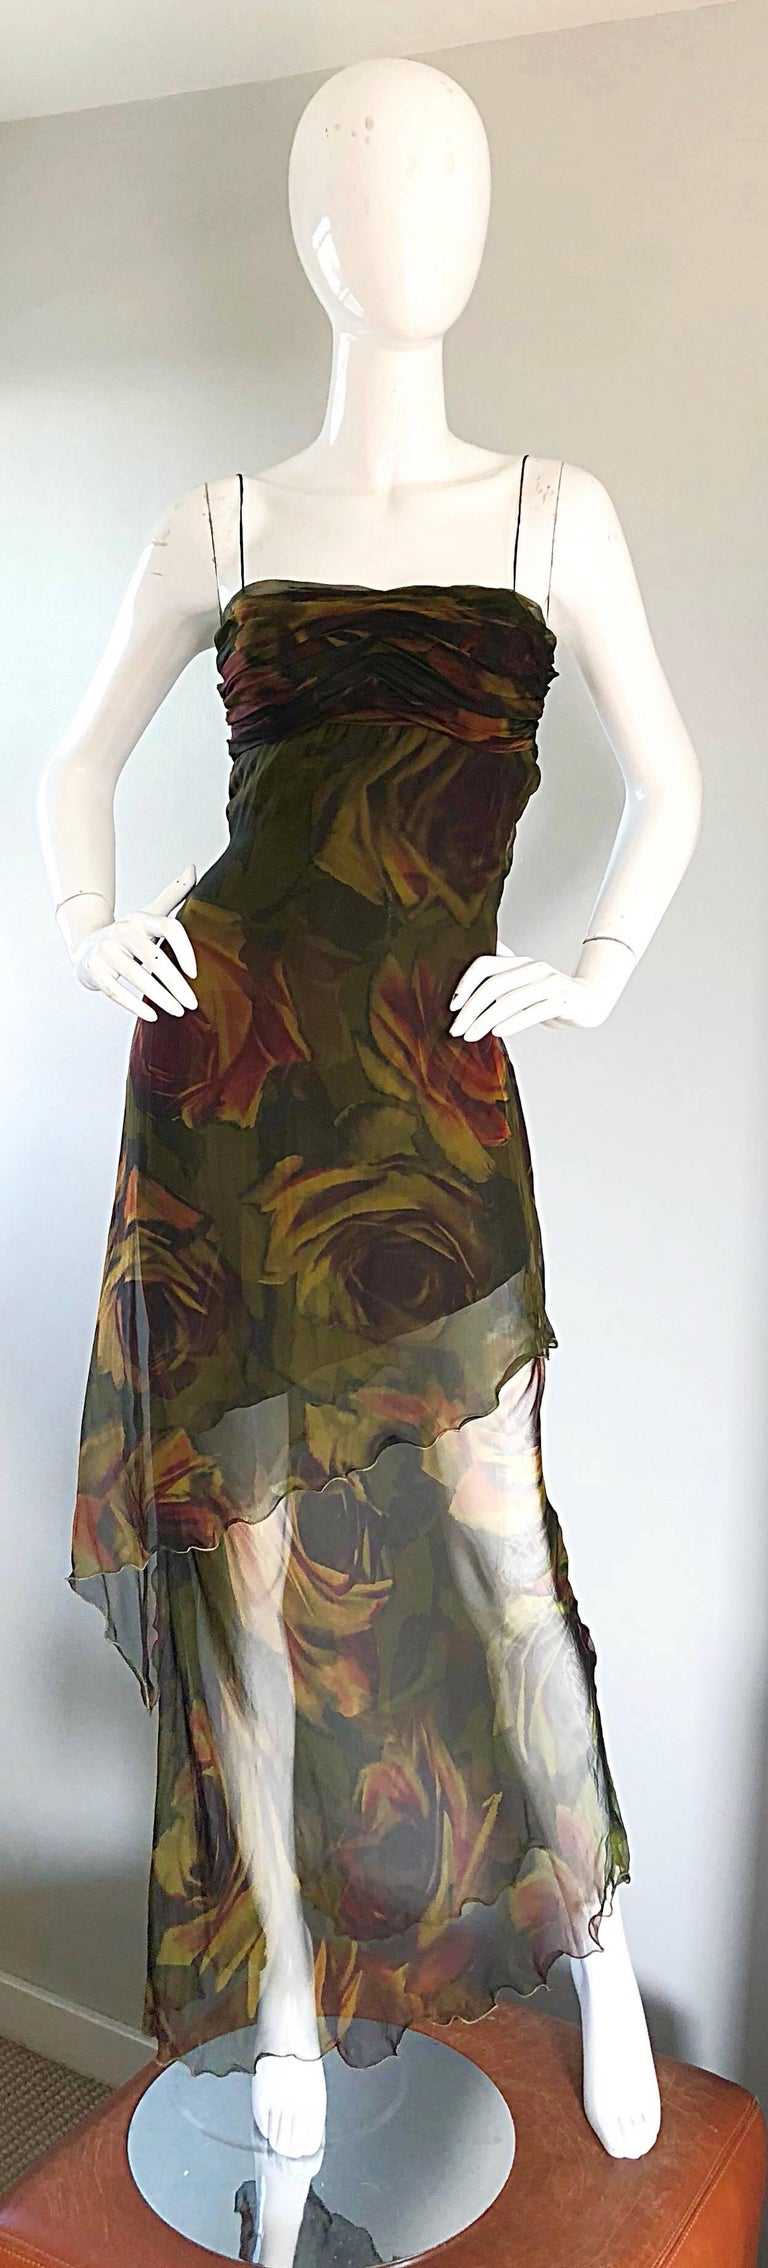 Sexy 1990s LUCA LUCA rose print silk chiffon hi-lo evening dress! Features a three dimensional print of roses in warm colors of hunter green, dark red, and chartreuse throughout. Flattering ruched bodice, with a hidden zipper up the side and